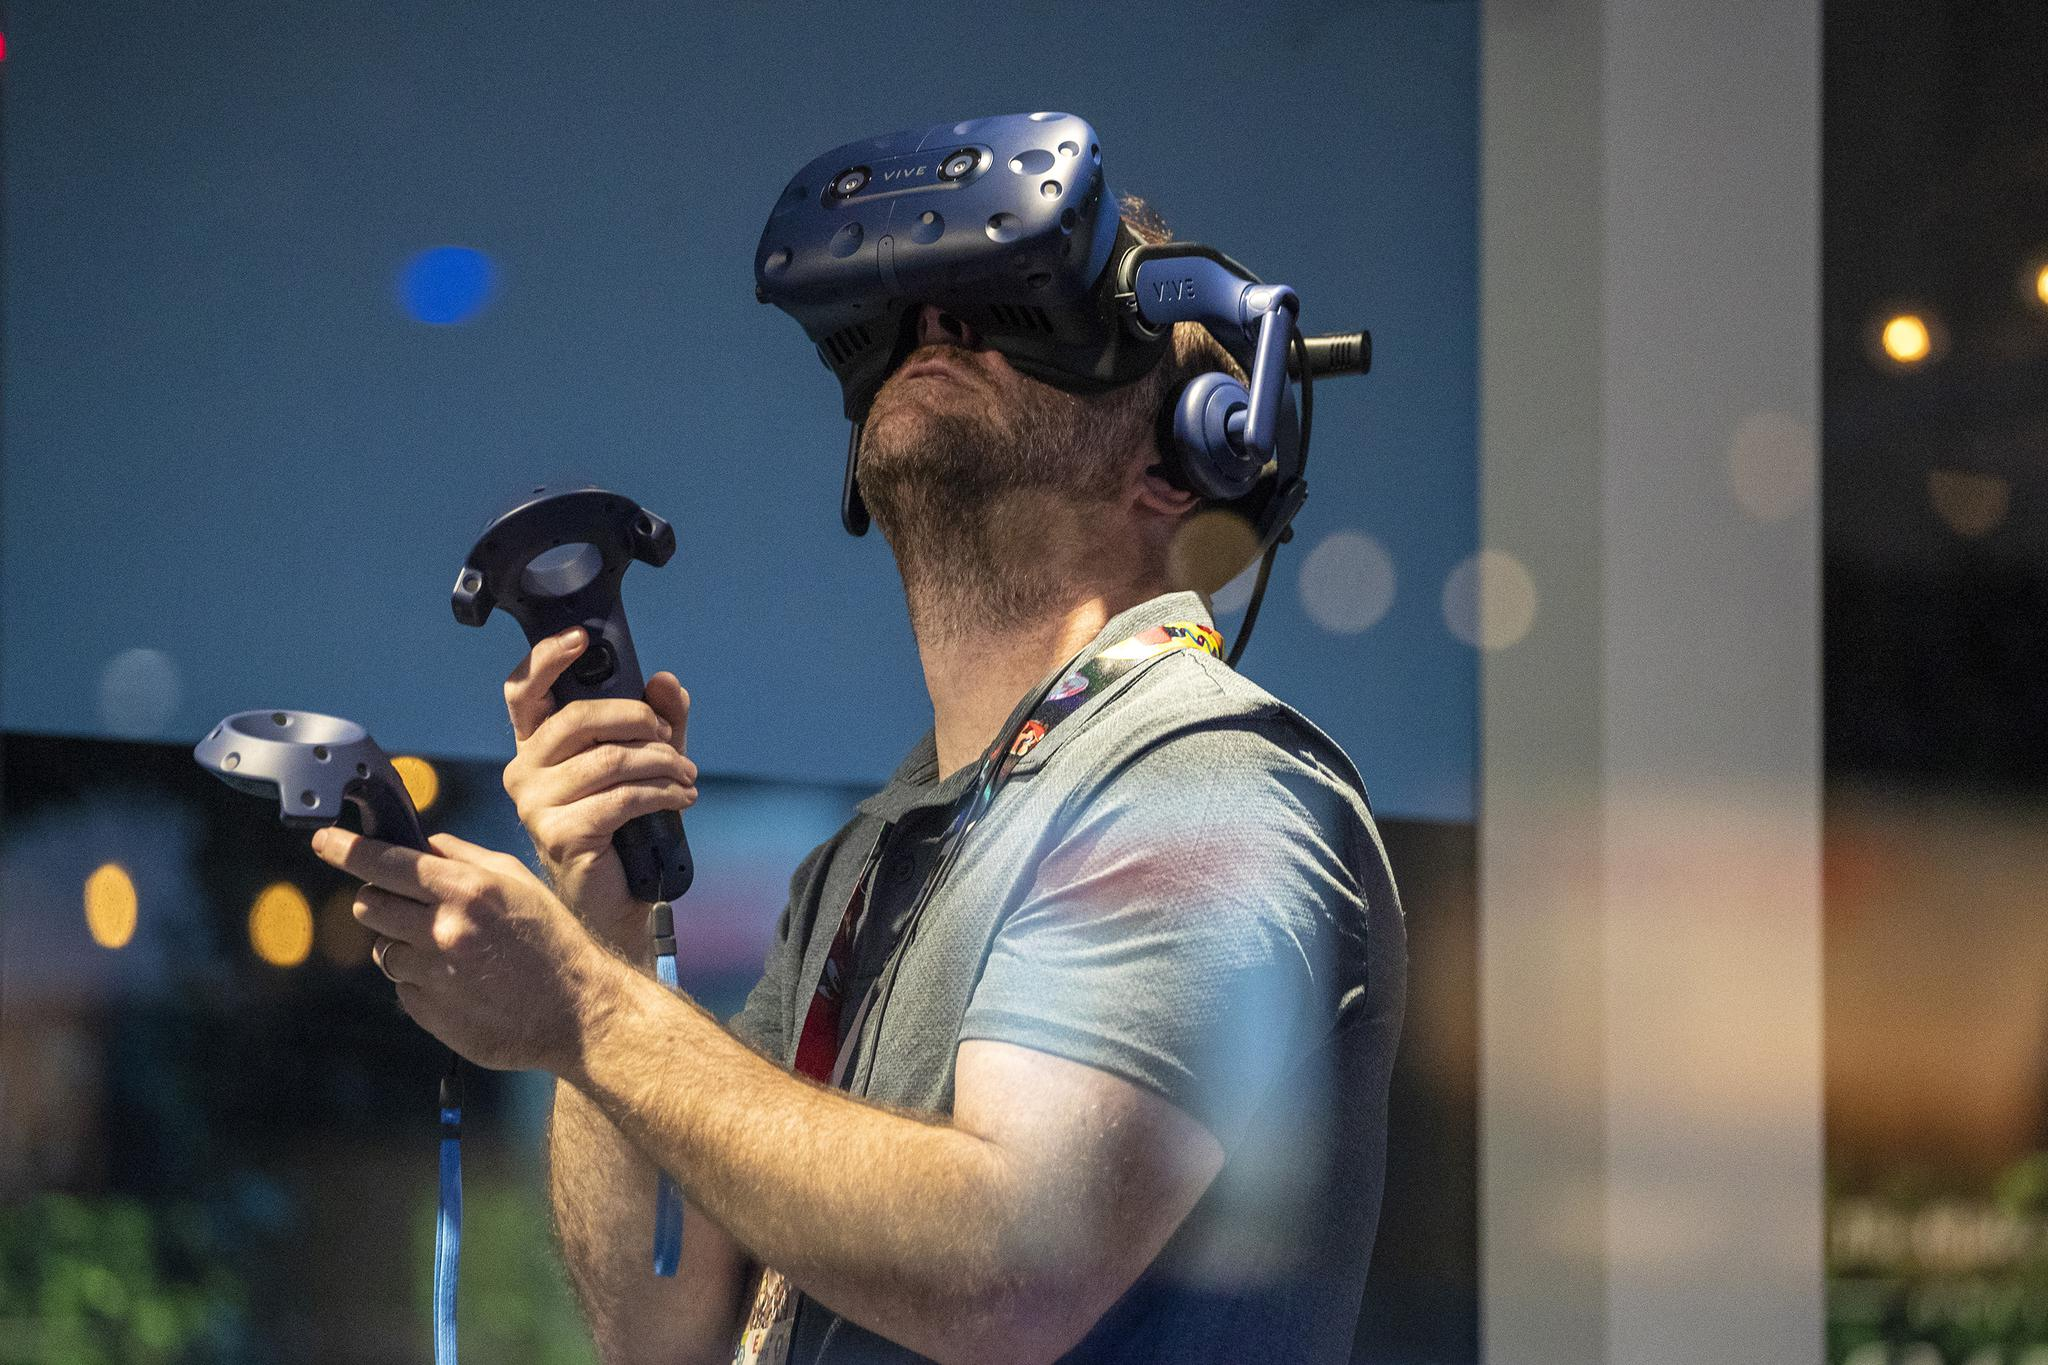 E3 Expo Highlights Virtual Reality's Never-ending Challenge: To Get